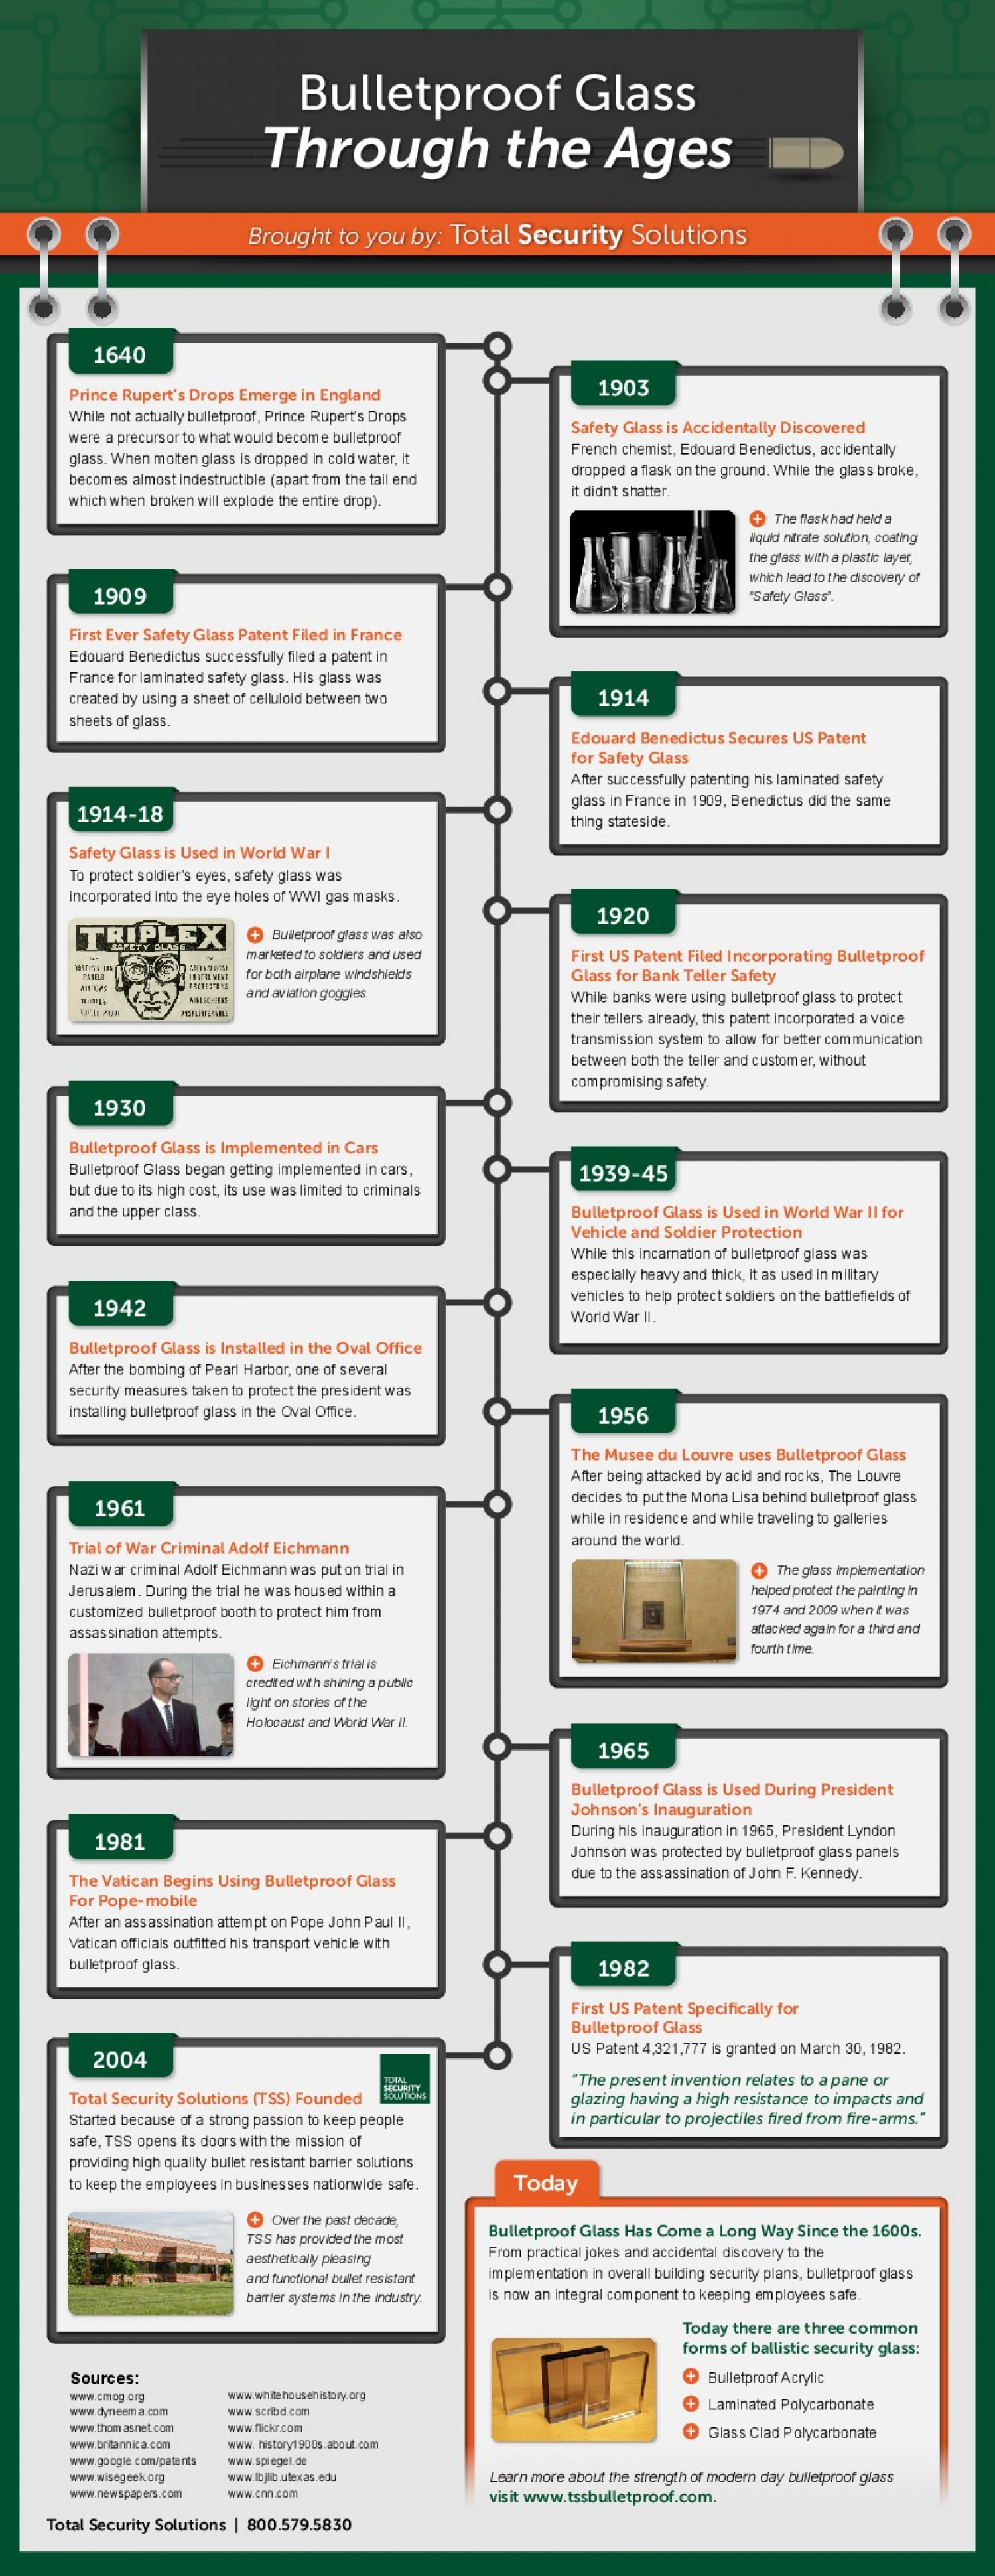 Bulletproof Glass Through The Ages - The History of Bulletproof Glass Infographic